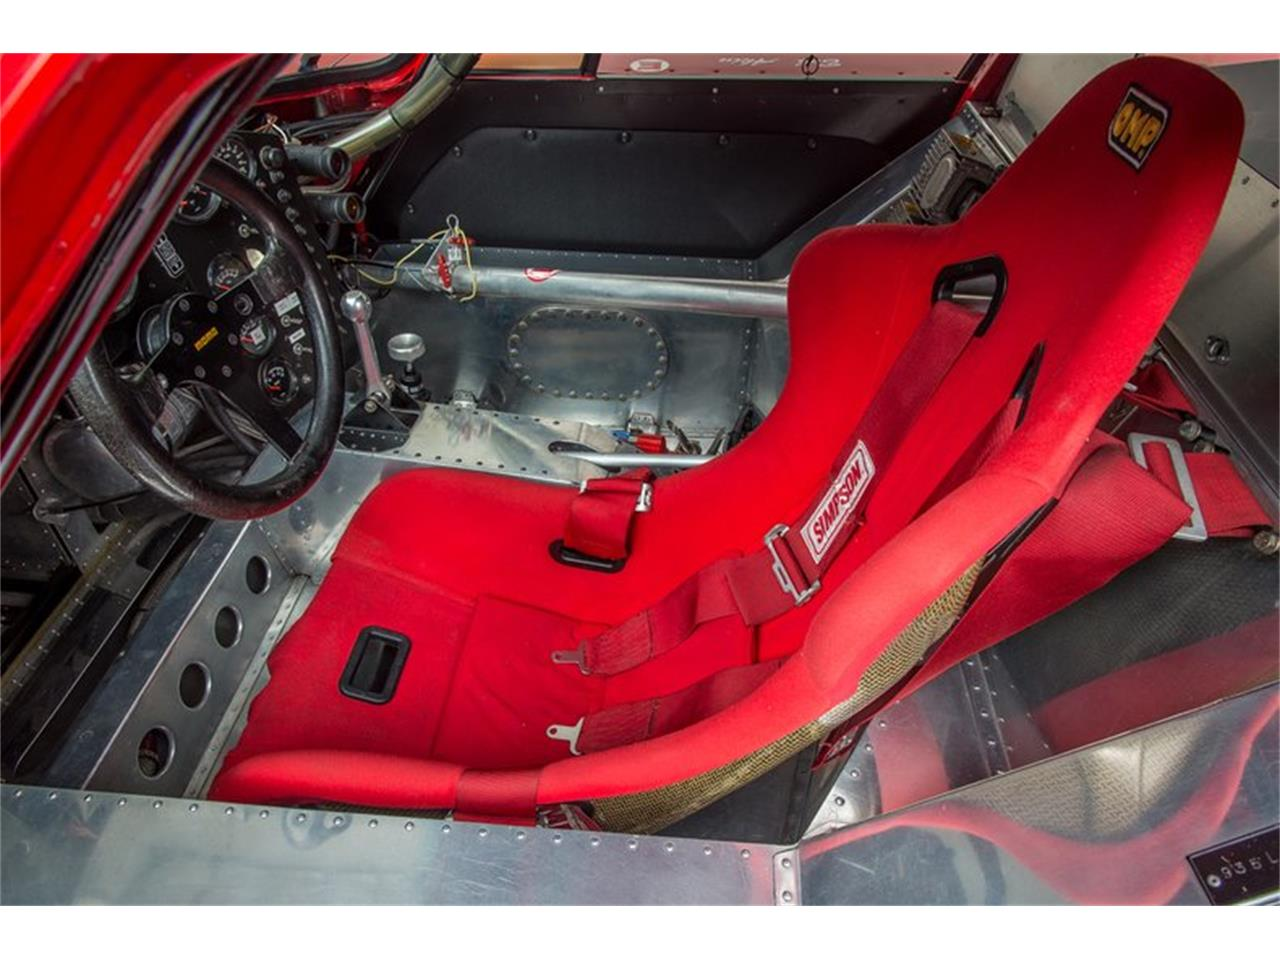 Large Picture of 1982 Porsche 935 located in Scotts Valley California Auction Vehicle - N77M